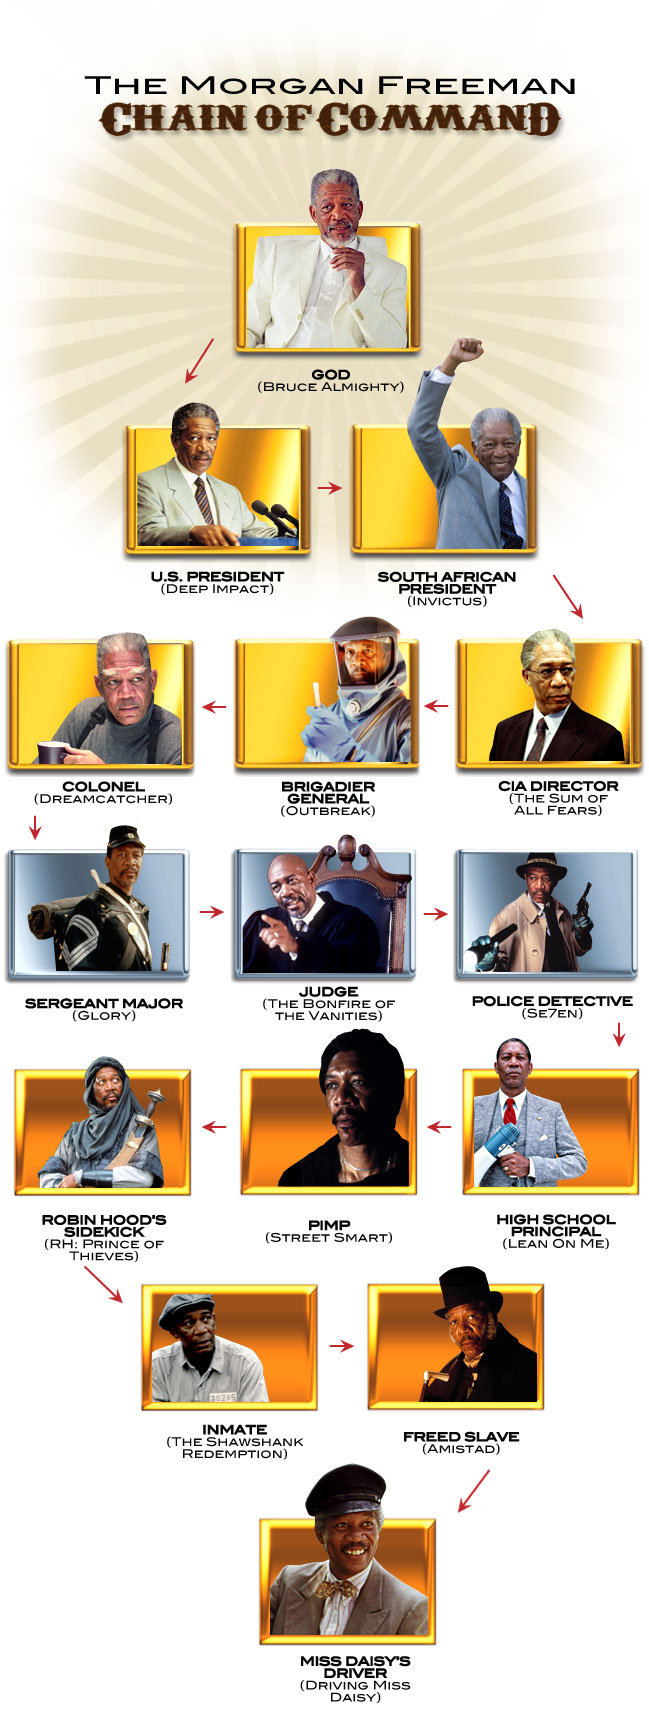 "The Morgan Freeman Chain Of Command. Found online. THE FREEMAN LLB. PRESIDENT AFRICAN in EET' IMPACT} BRIGADIER cm :' I"" Dfl GENERAL {THE SLIM OF ALI. FEARS} JU"